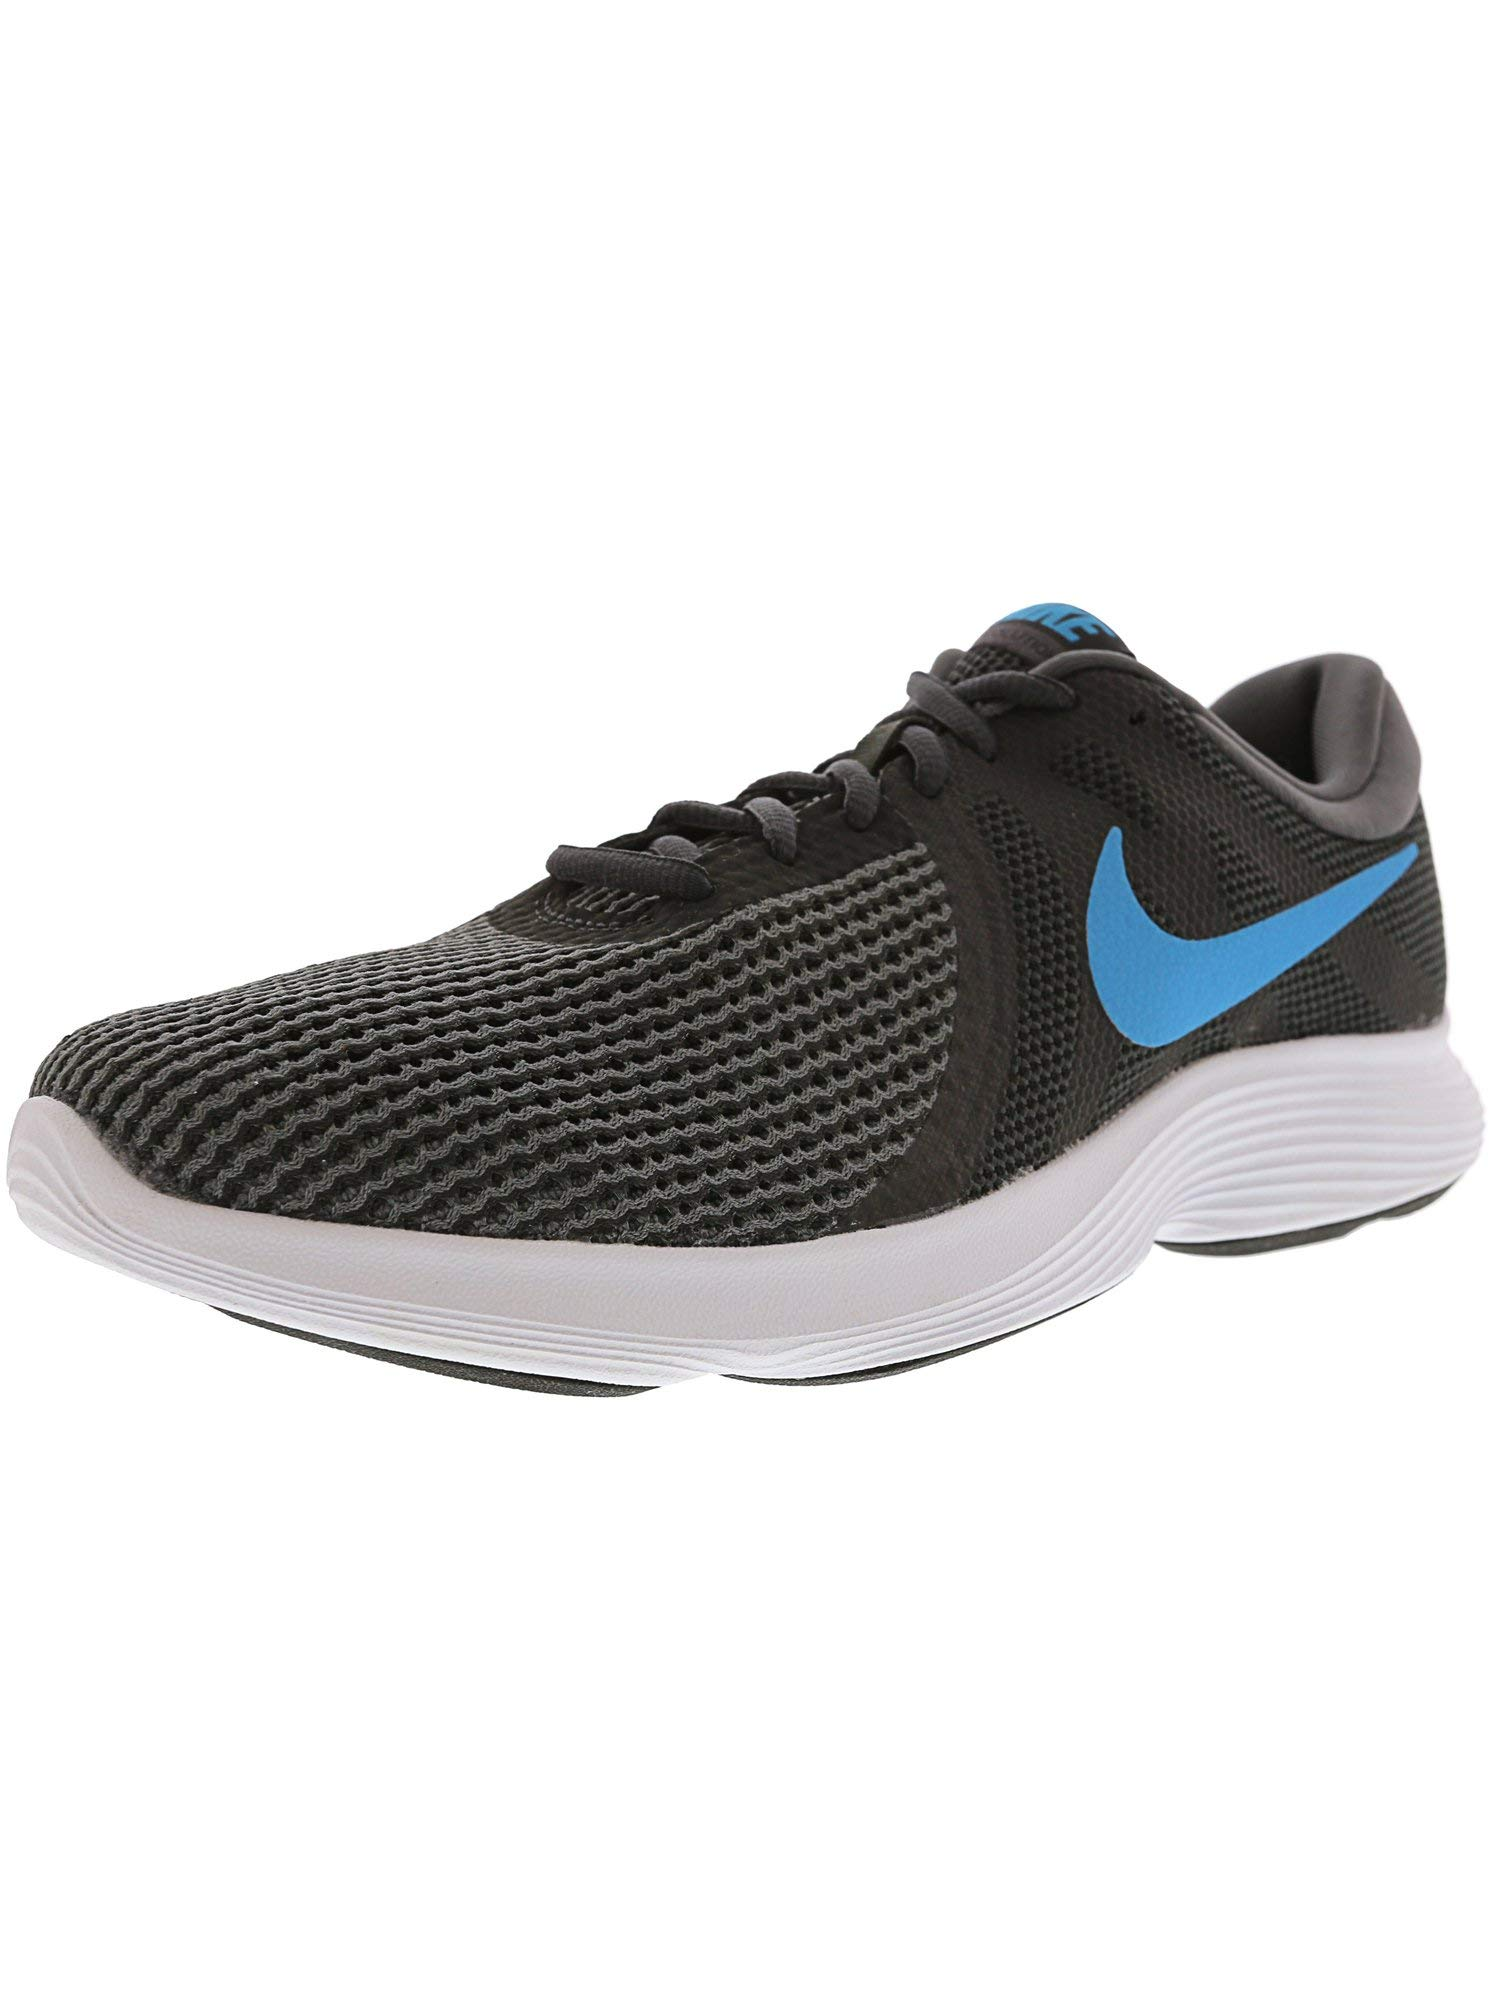 newest c0486 f1c81 Galleon - Nike Men s Revolution 4 Running Shoes (11 D(M) US, Anthracite Lt  Blue Fury Dk Gry)